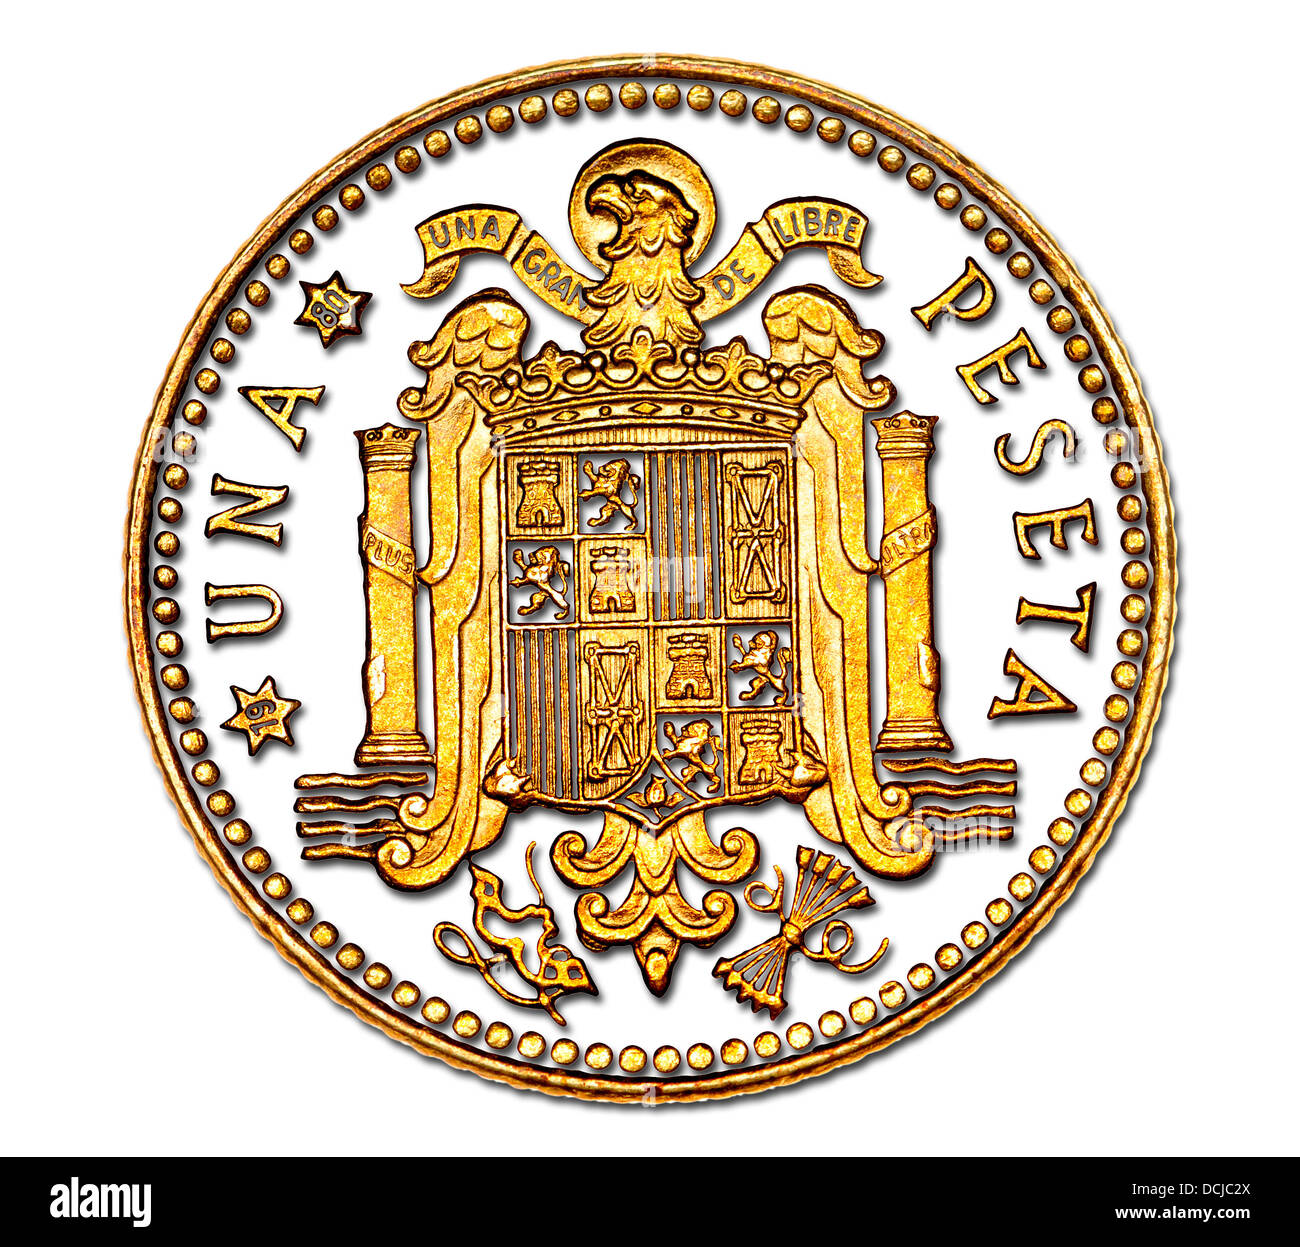 Spaish 1 peseta coin from 1975 - Stock Image